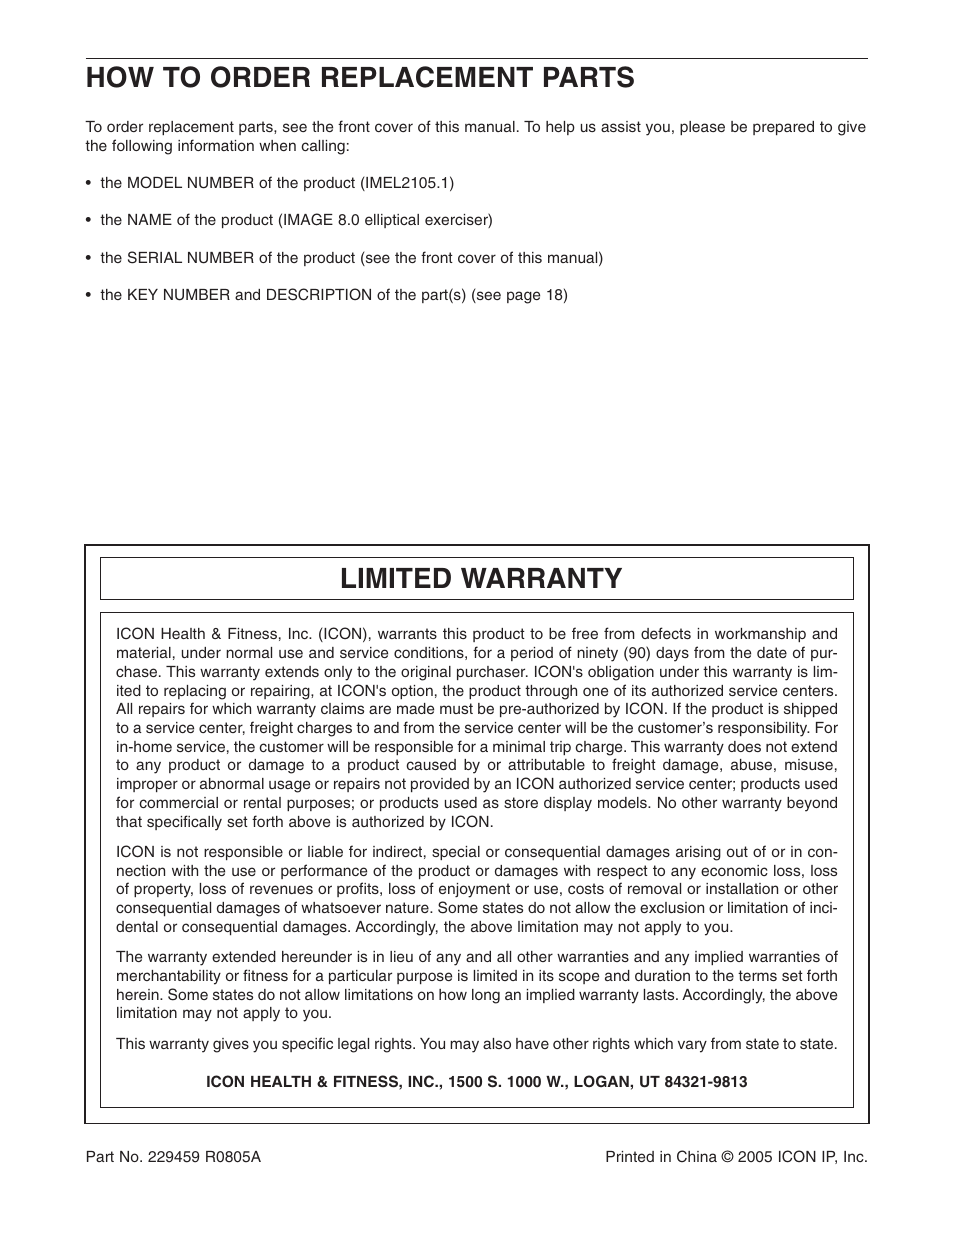 how to order replacement parts limited warranty image imel2105 1 rh manualsdir com